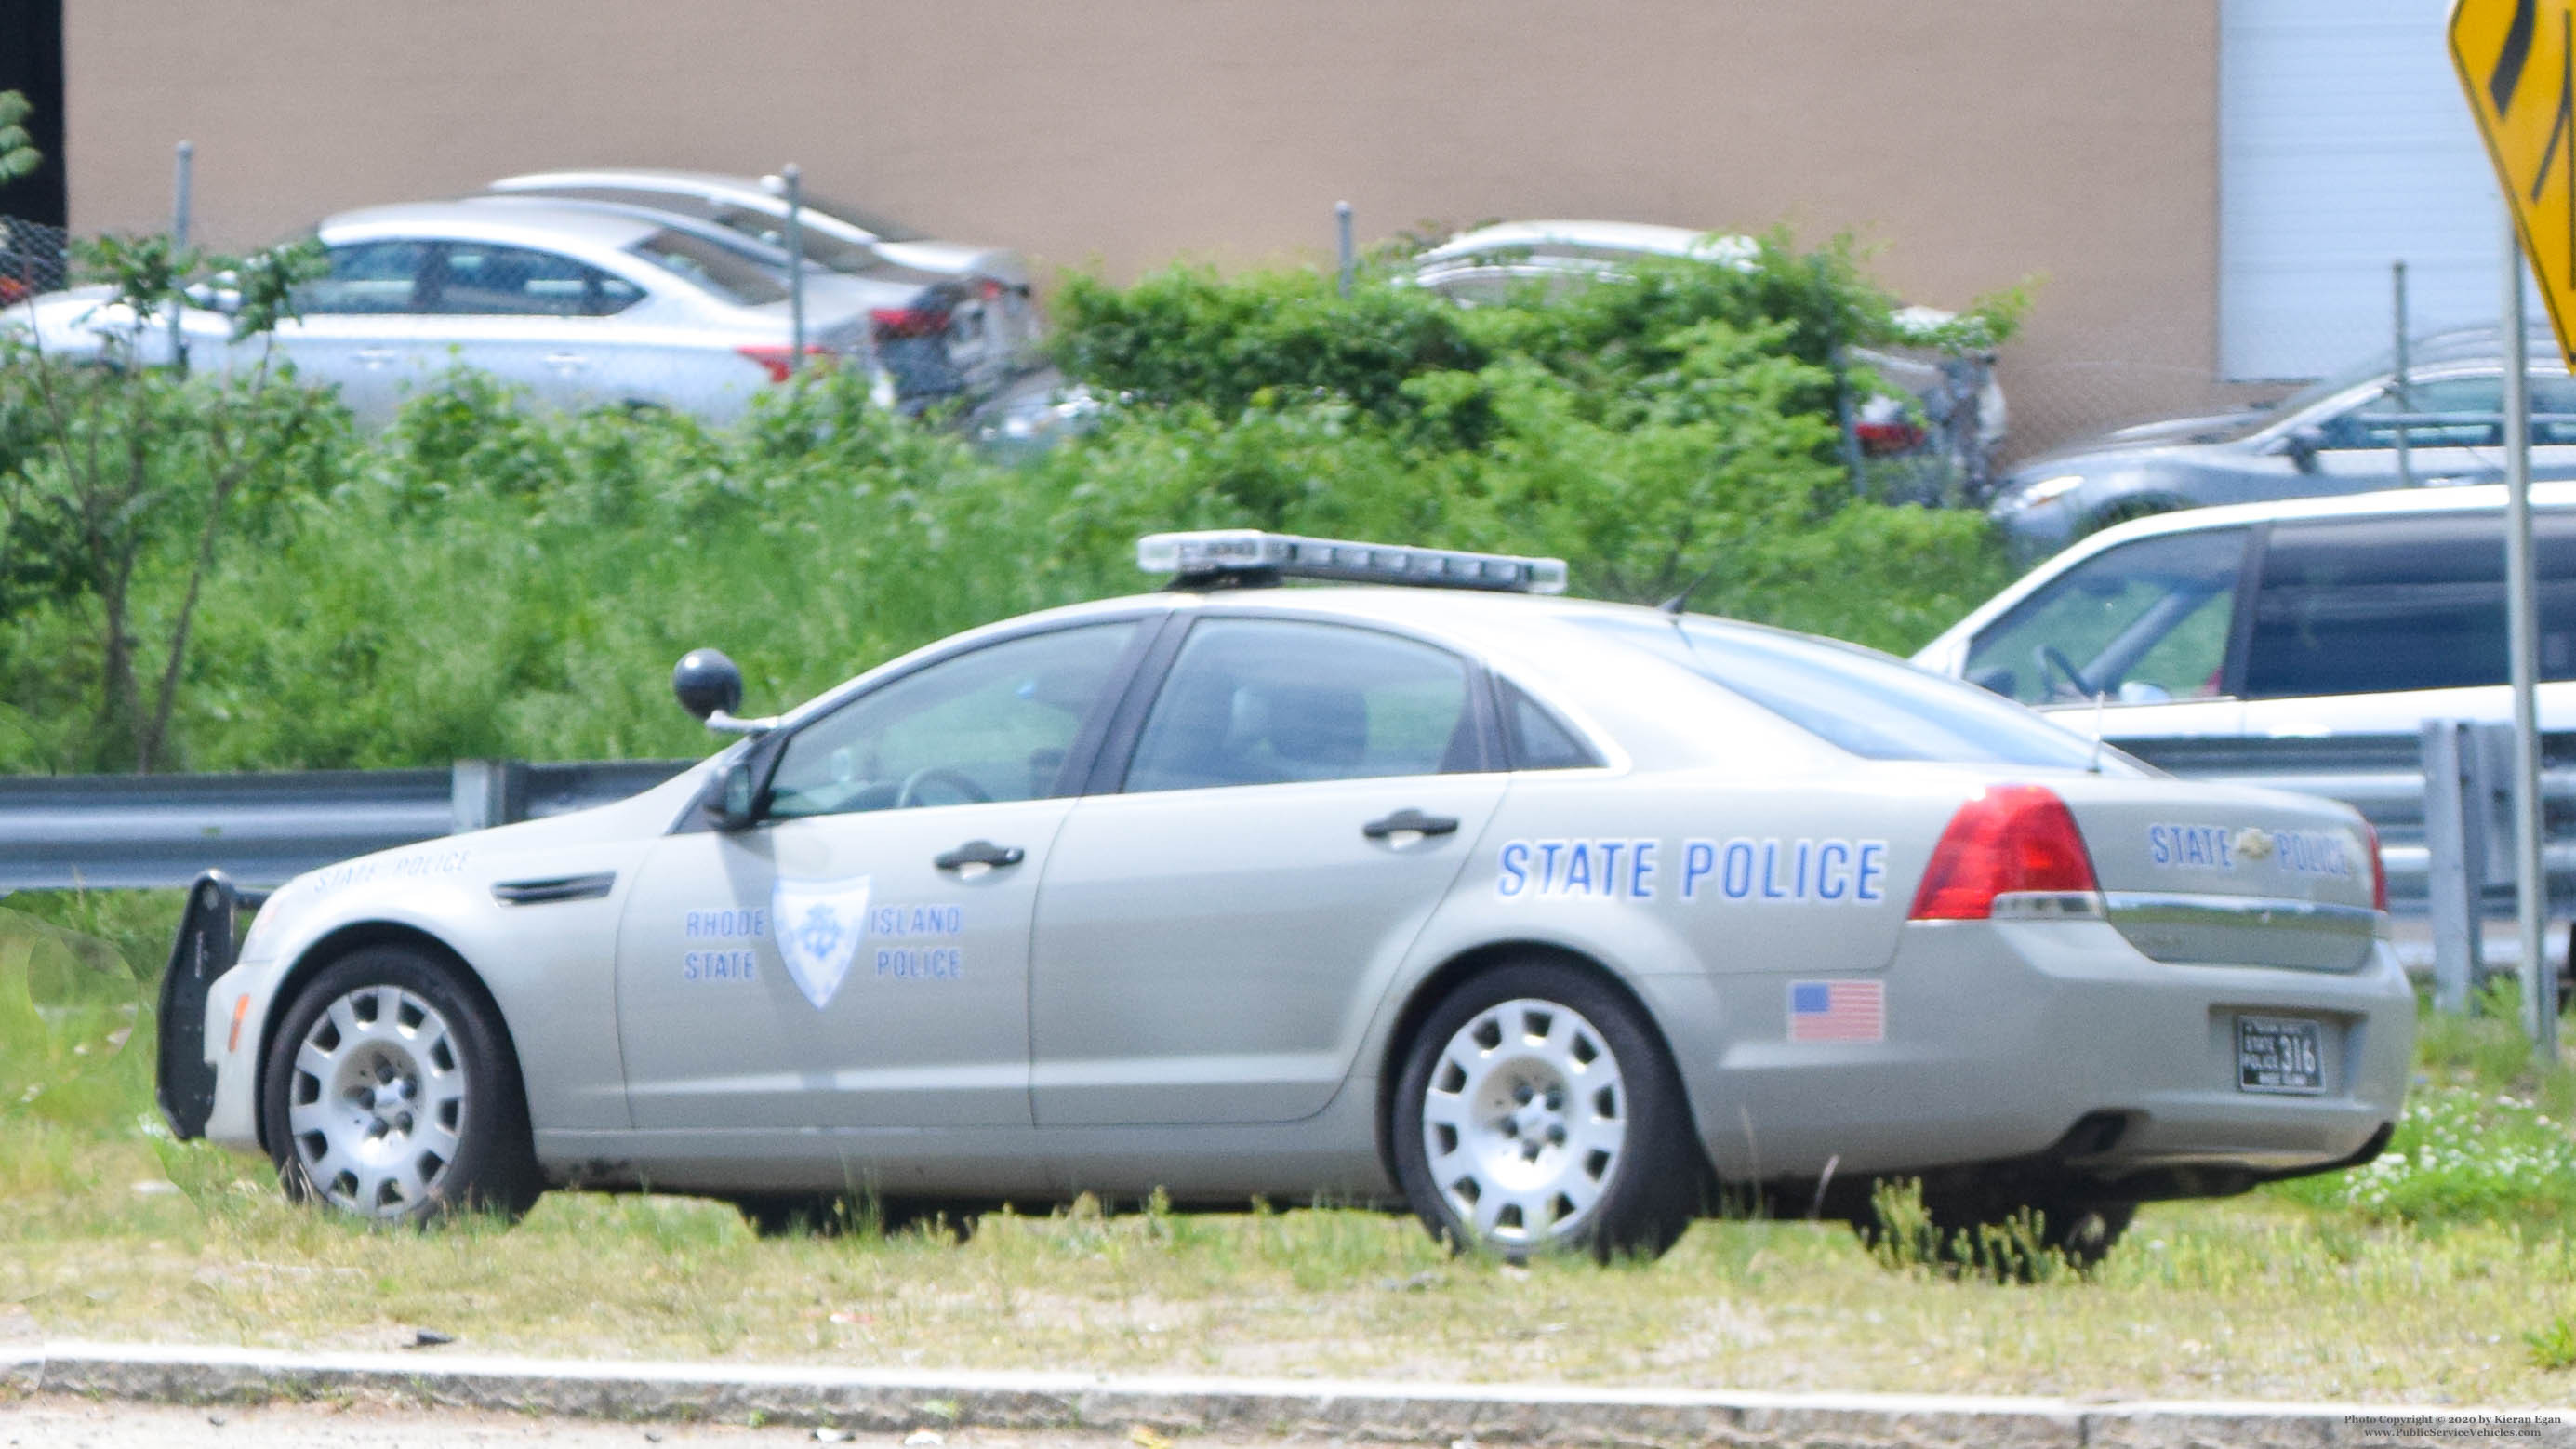 A photo  of Rhode Island State Police             Cruiser 316, a 2013 Chevrolet Caprice             taken by Kieran Egan